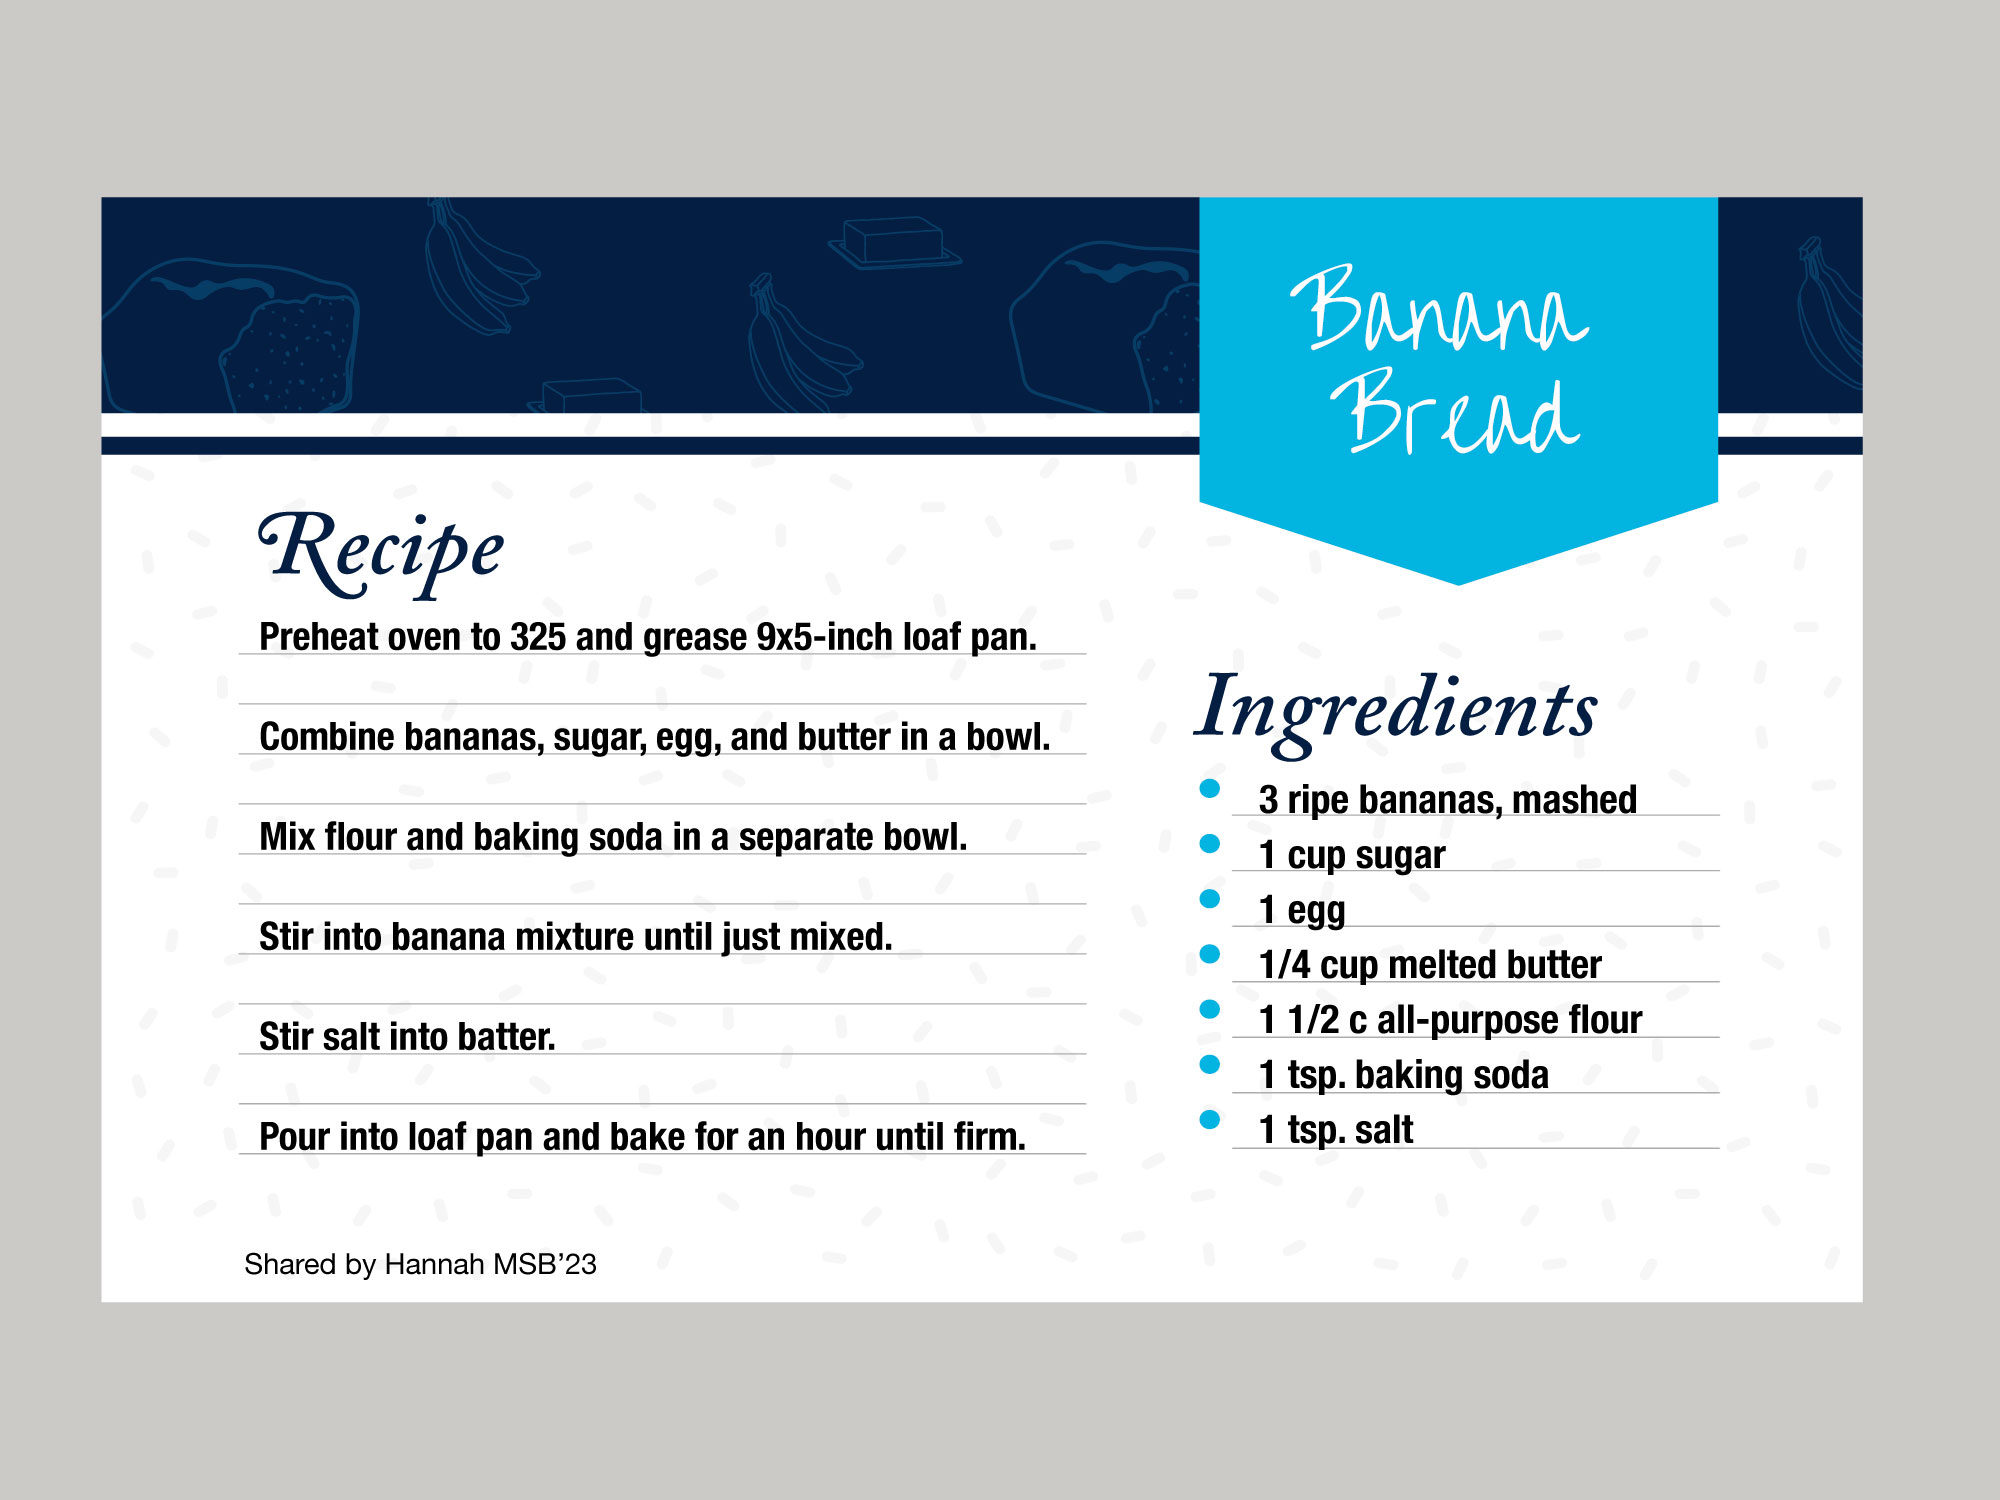 A recipe card displays the recipe for Banana Bread